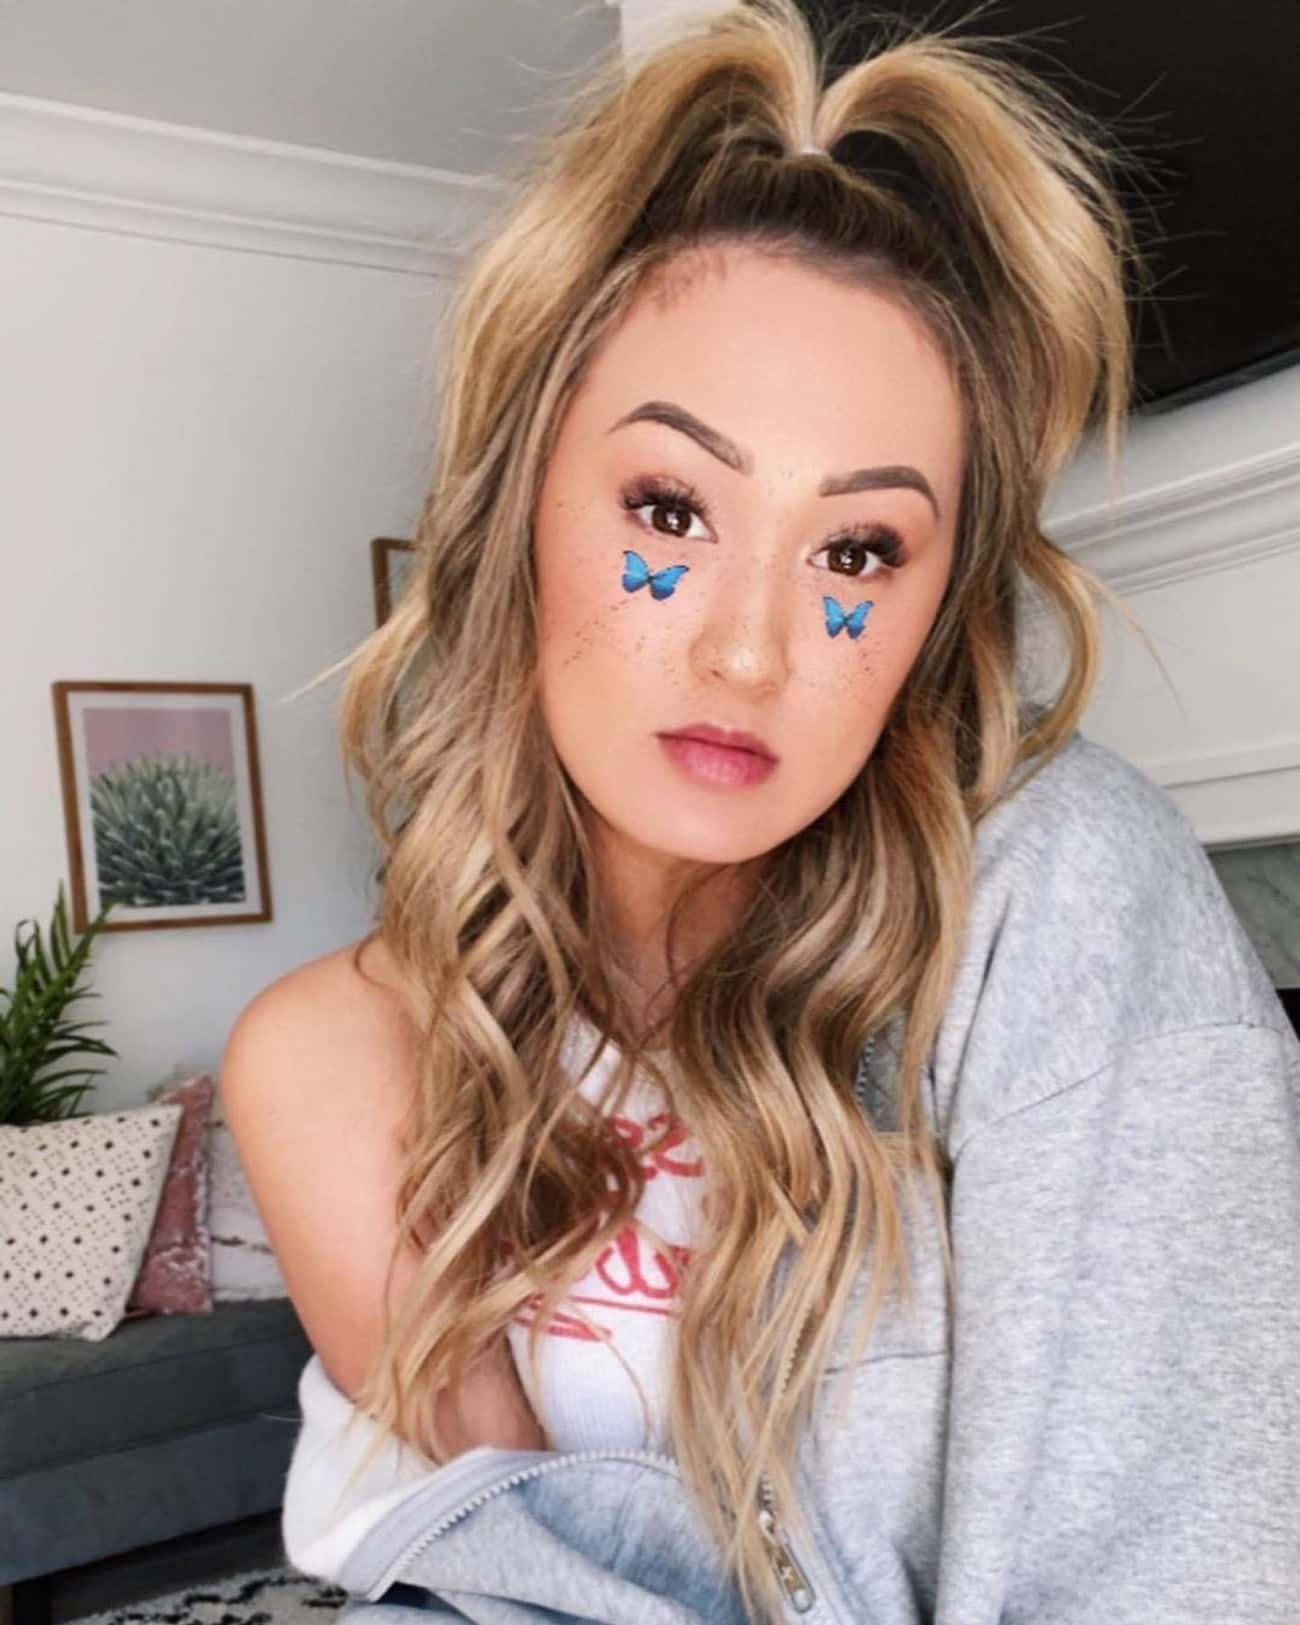 Read More About LaurDIY: is listed (or ranked) 3 on the list The Two Men Who Stole LaurDIY's Heart